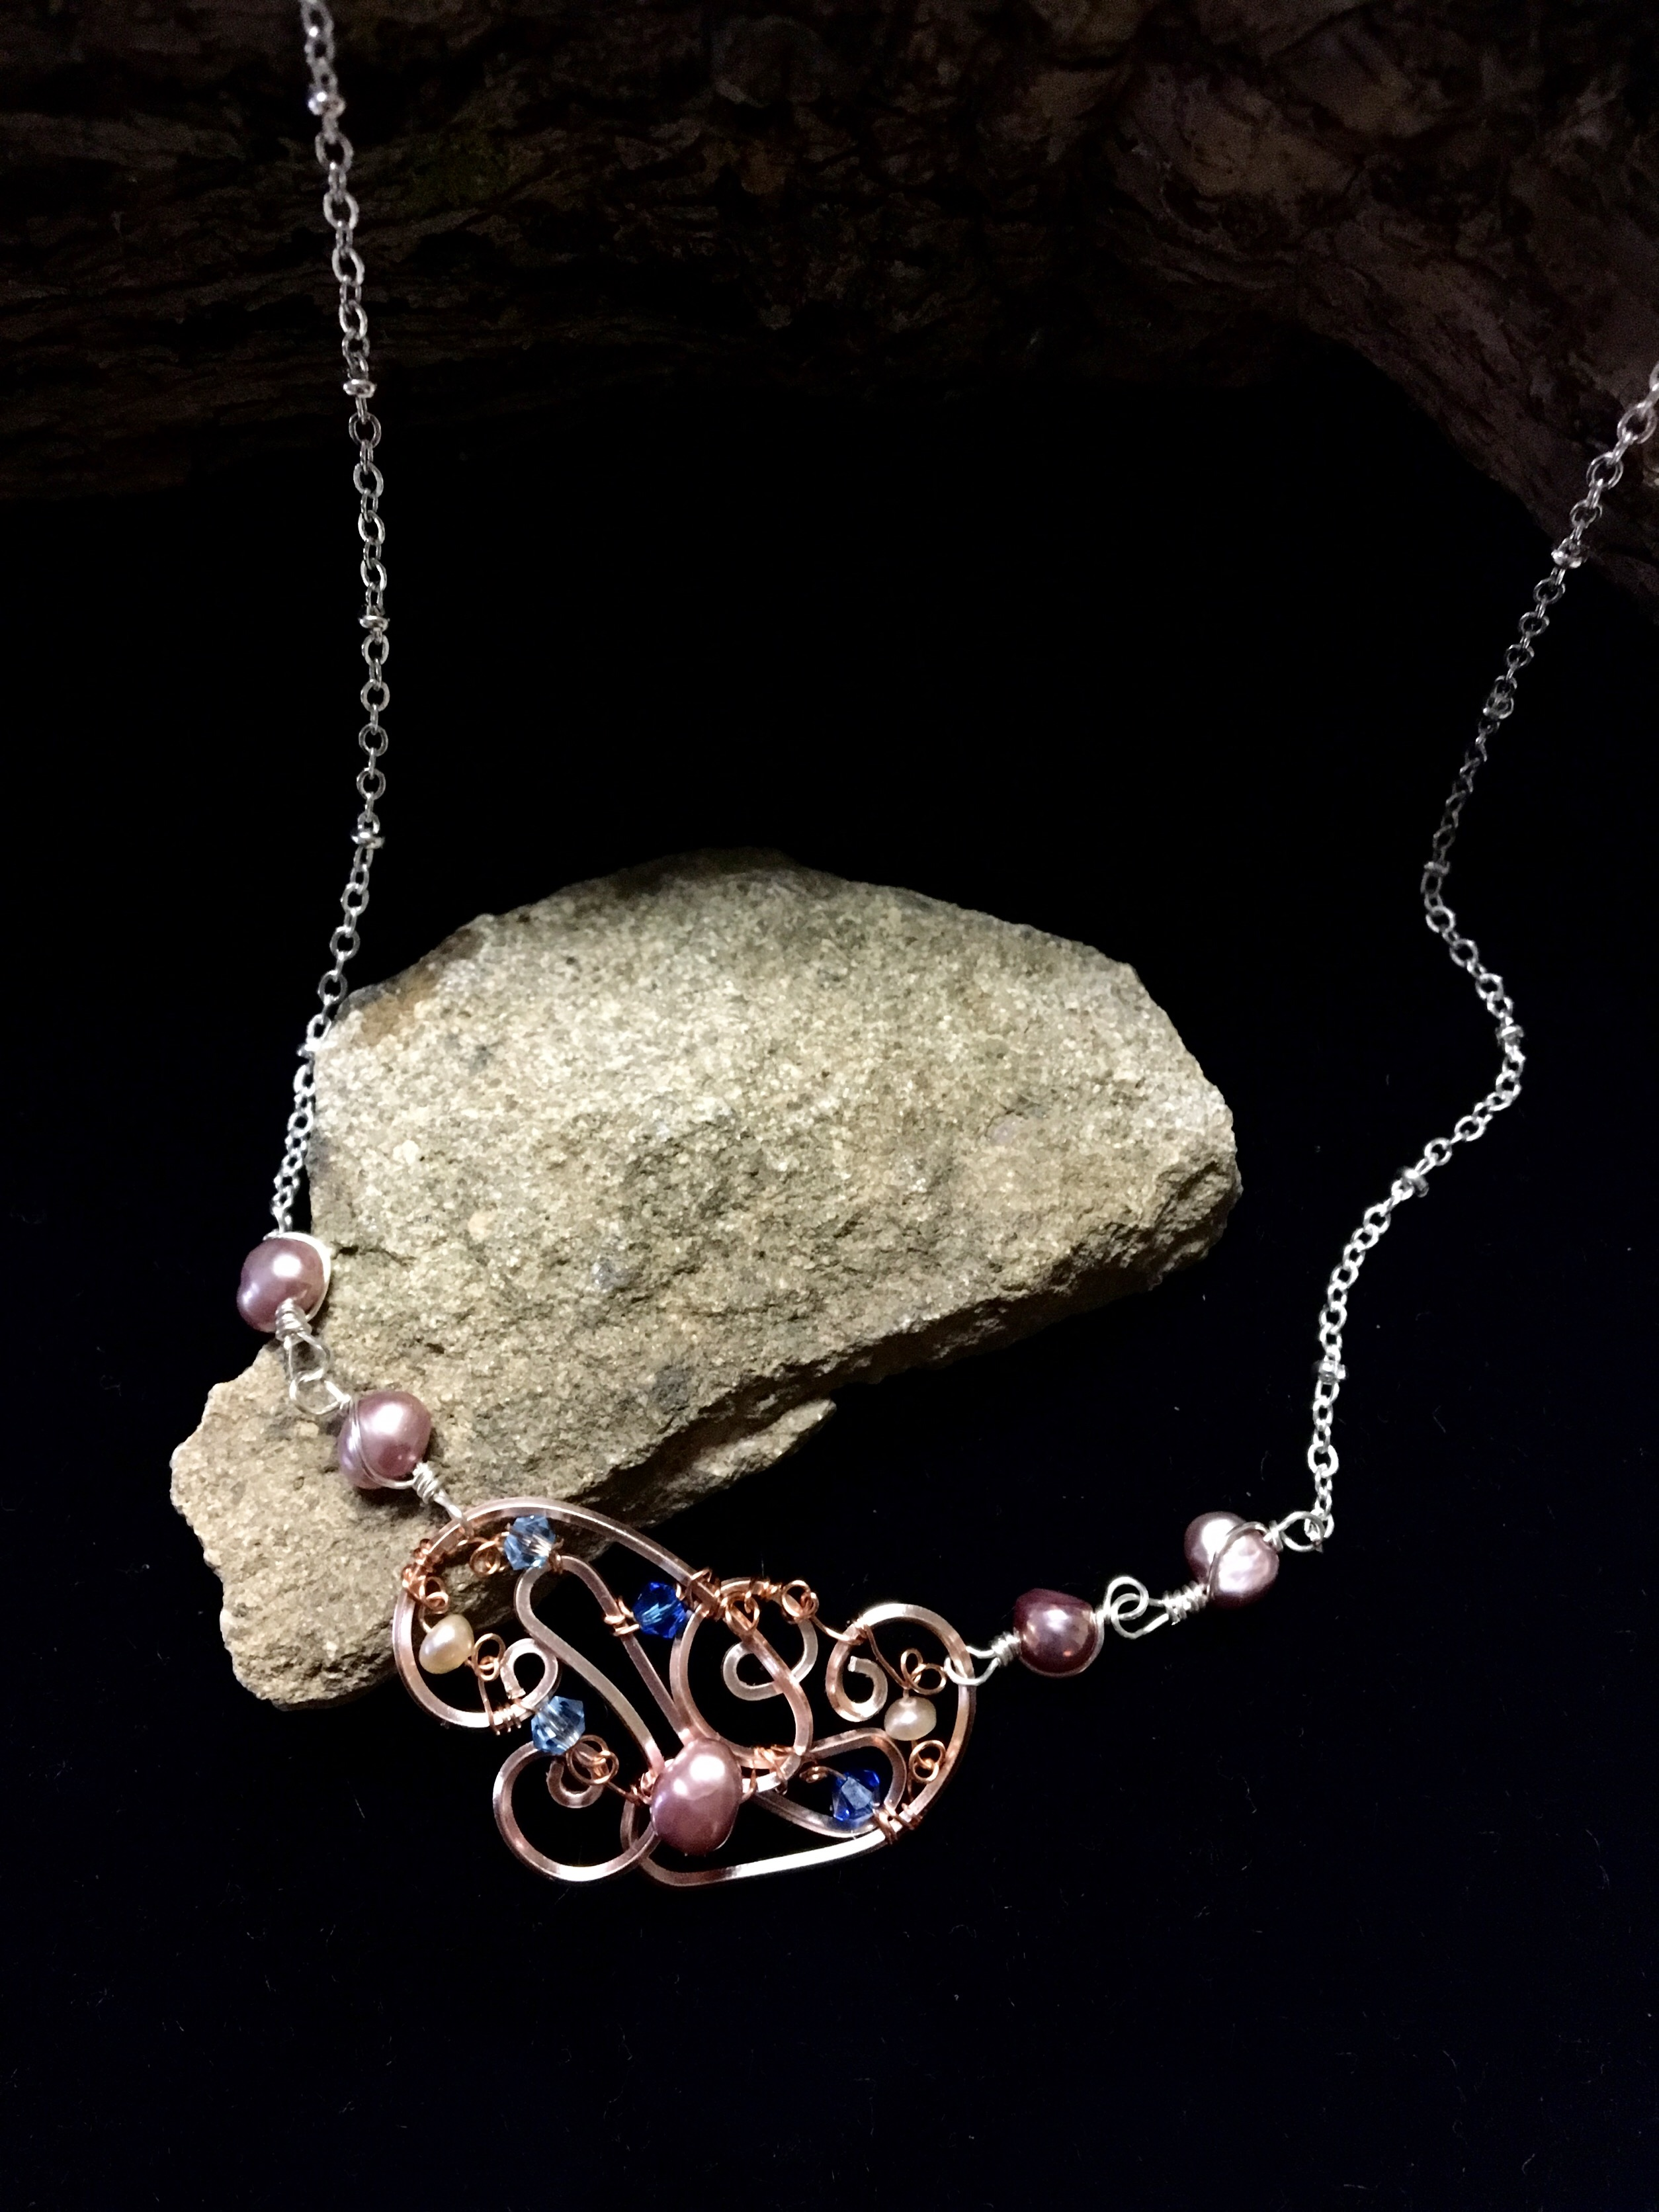 Dainty Deva Necklace - pink pearls and swarovsky - Silver Plated Rose gold Color